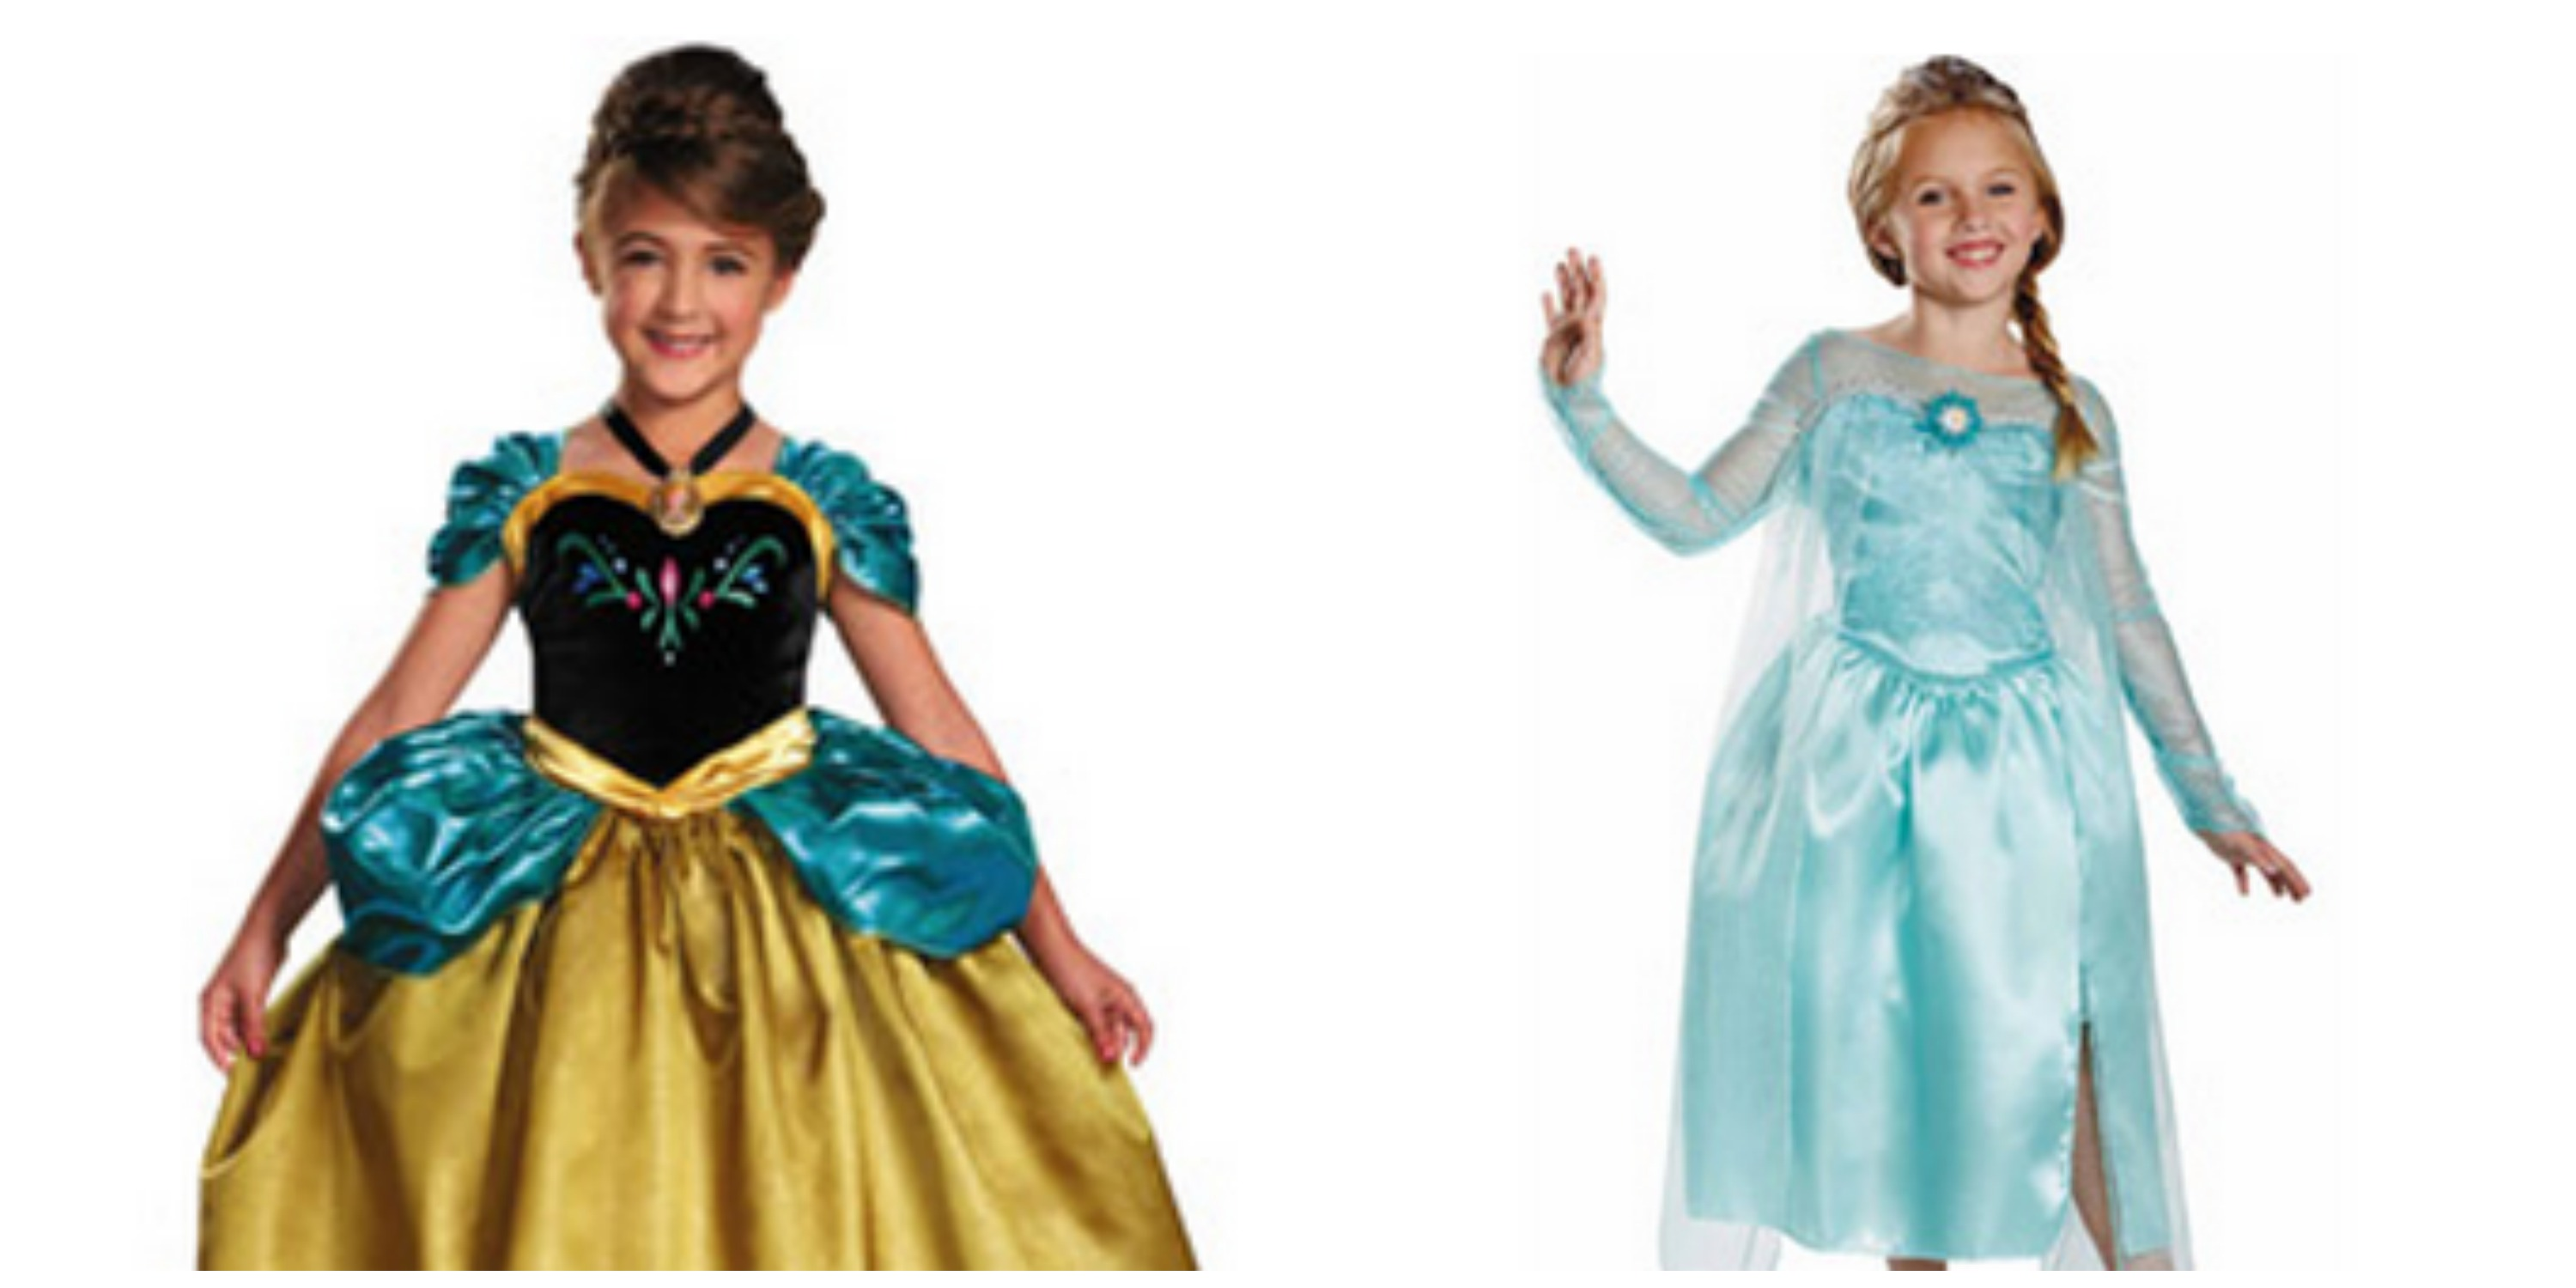 frozen-costume  sc 1 st  My Frugal Adventures & Elsa and Anna Dress Up Outfits as low as $17 - My Frugal Adventures